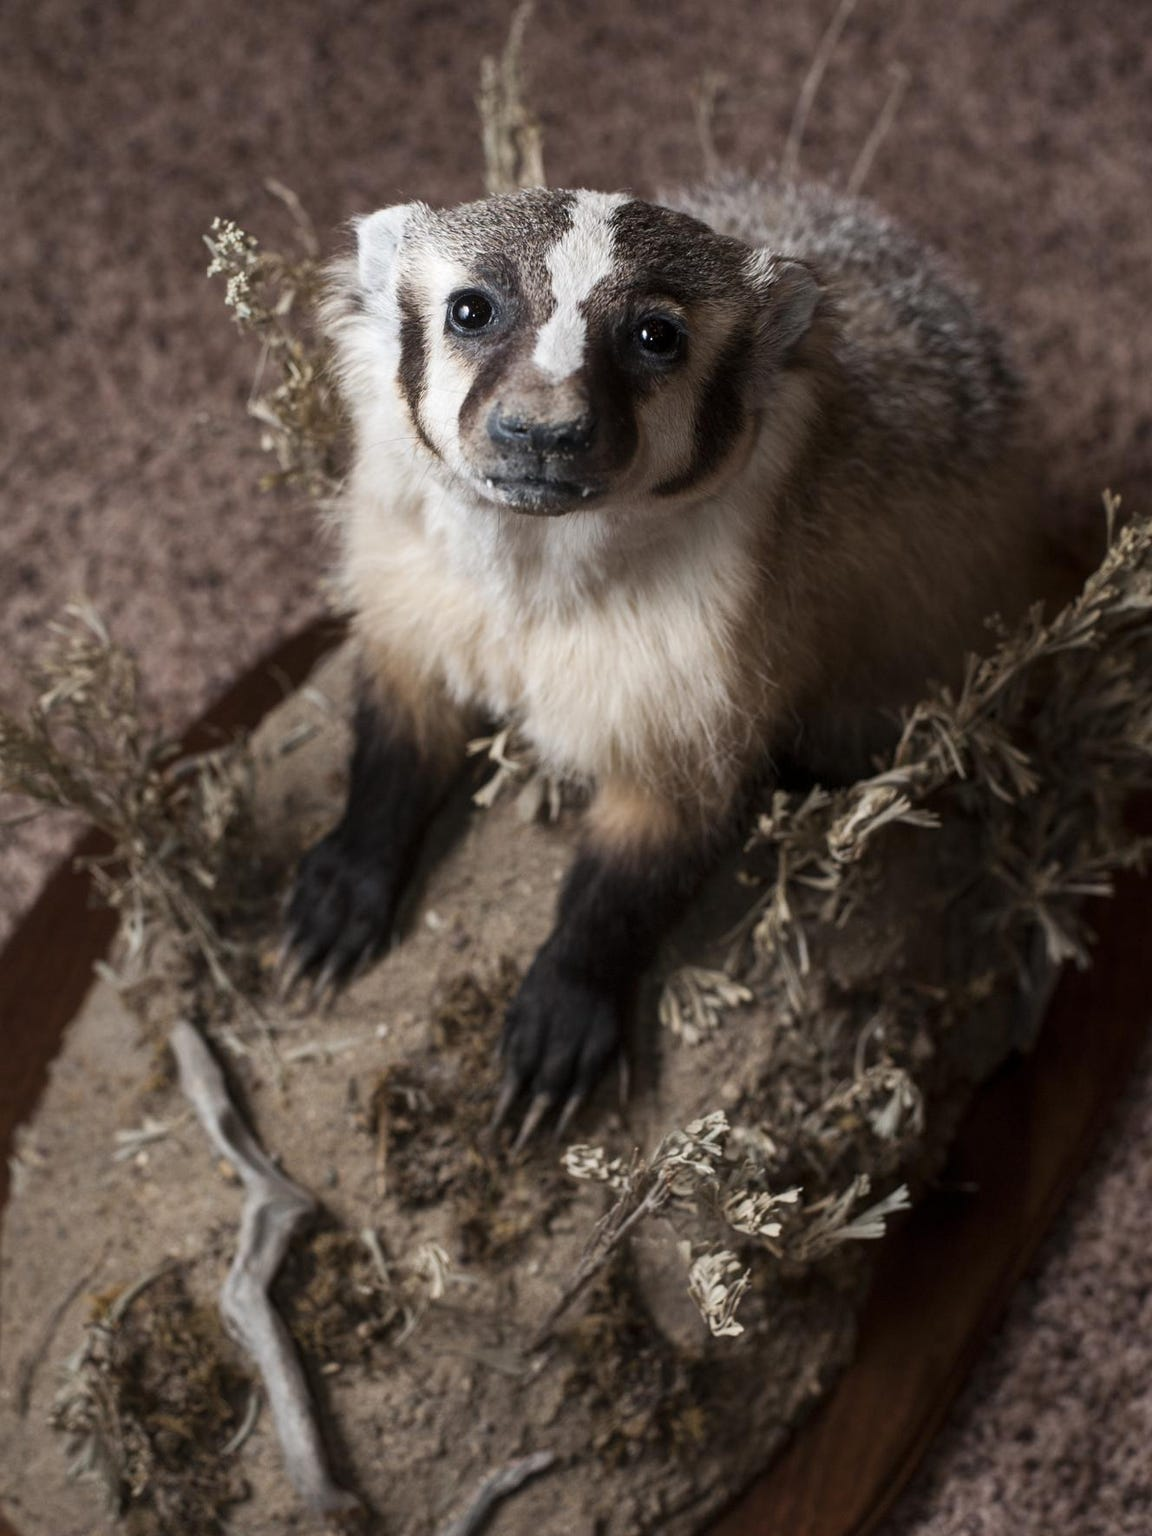 This juvenile badger by Sara Renfrow won first place